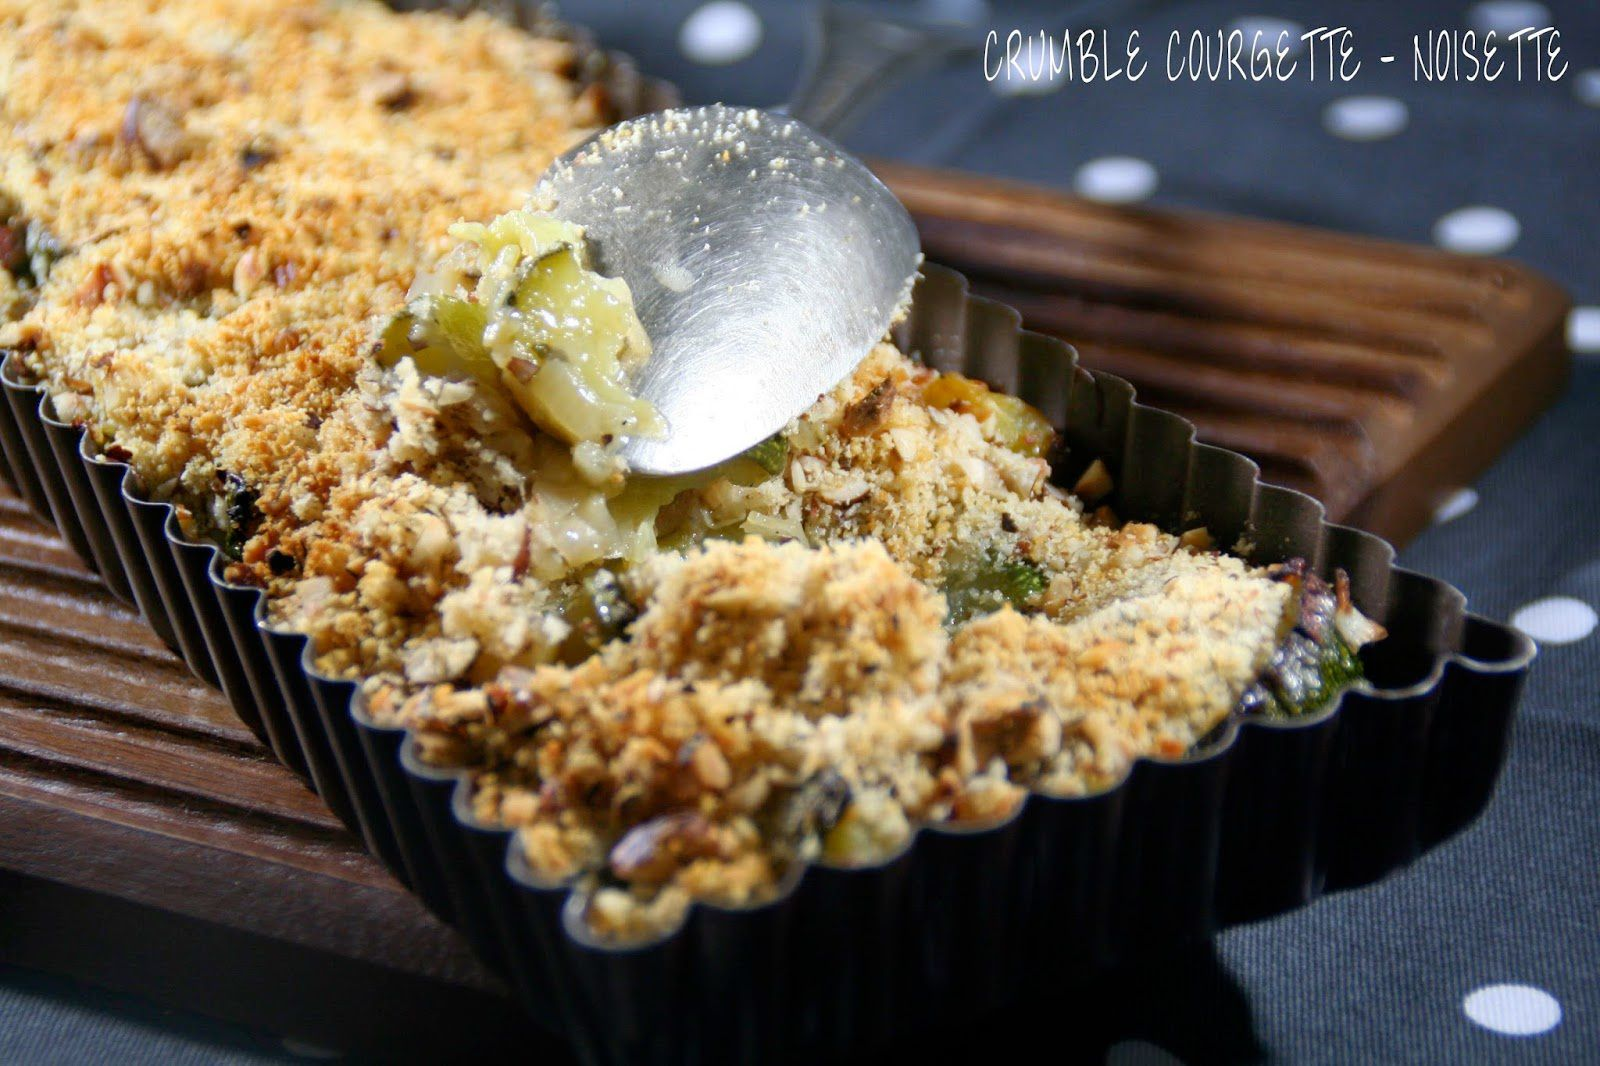 Crumble Courgette & Noisette